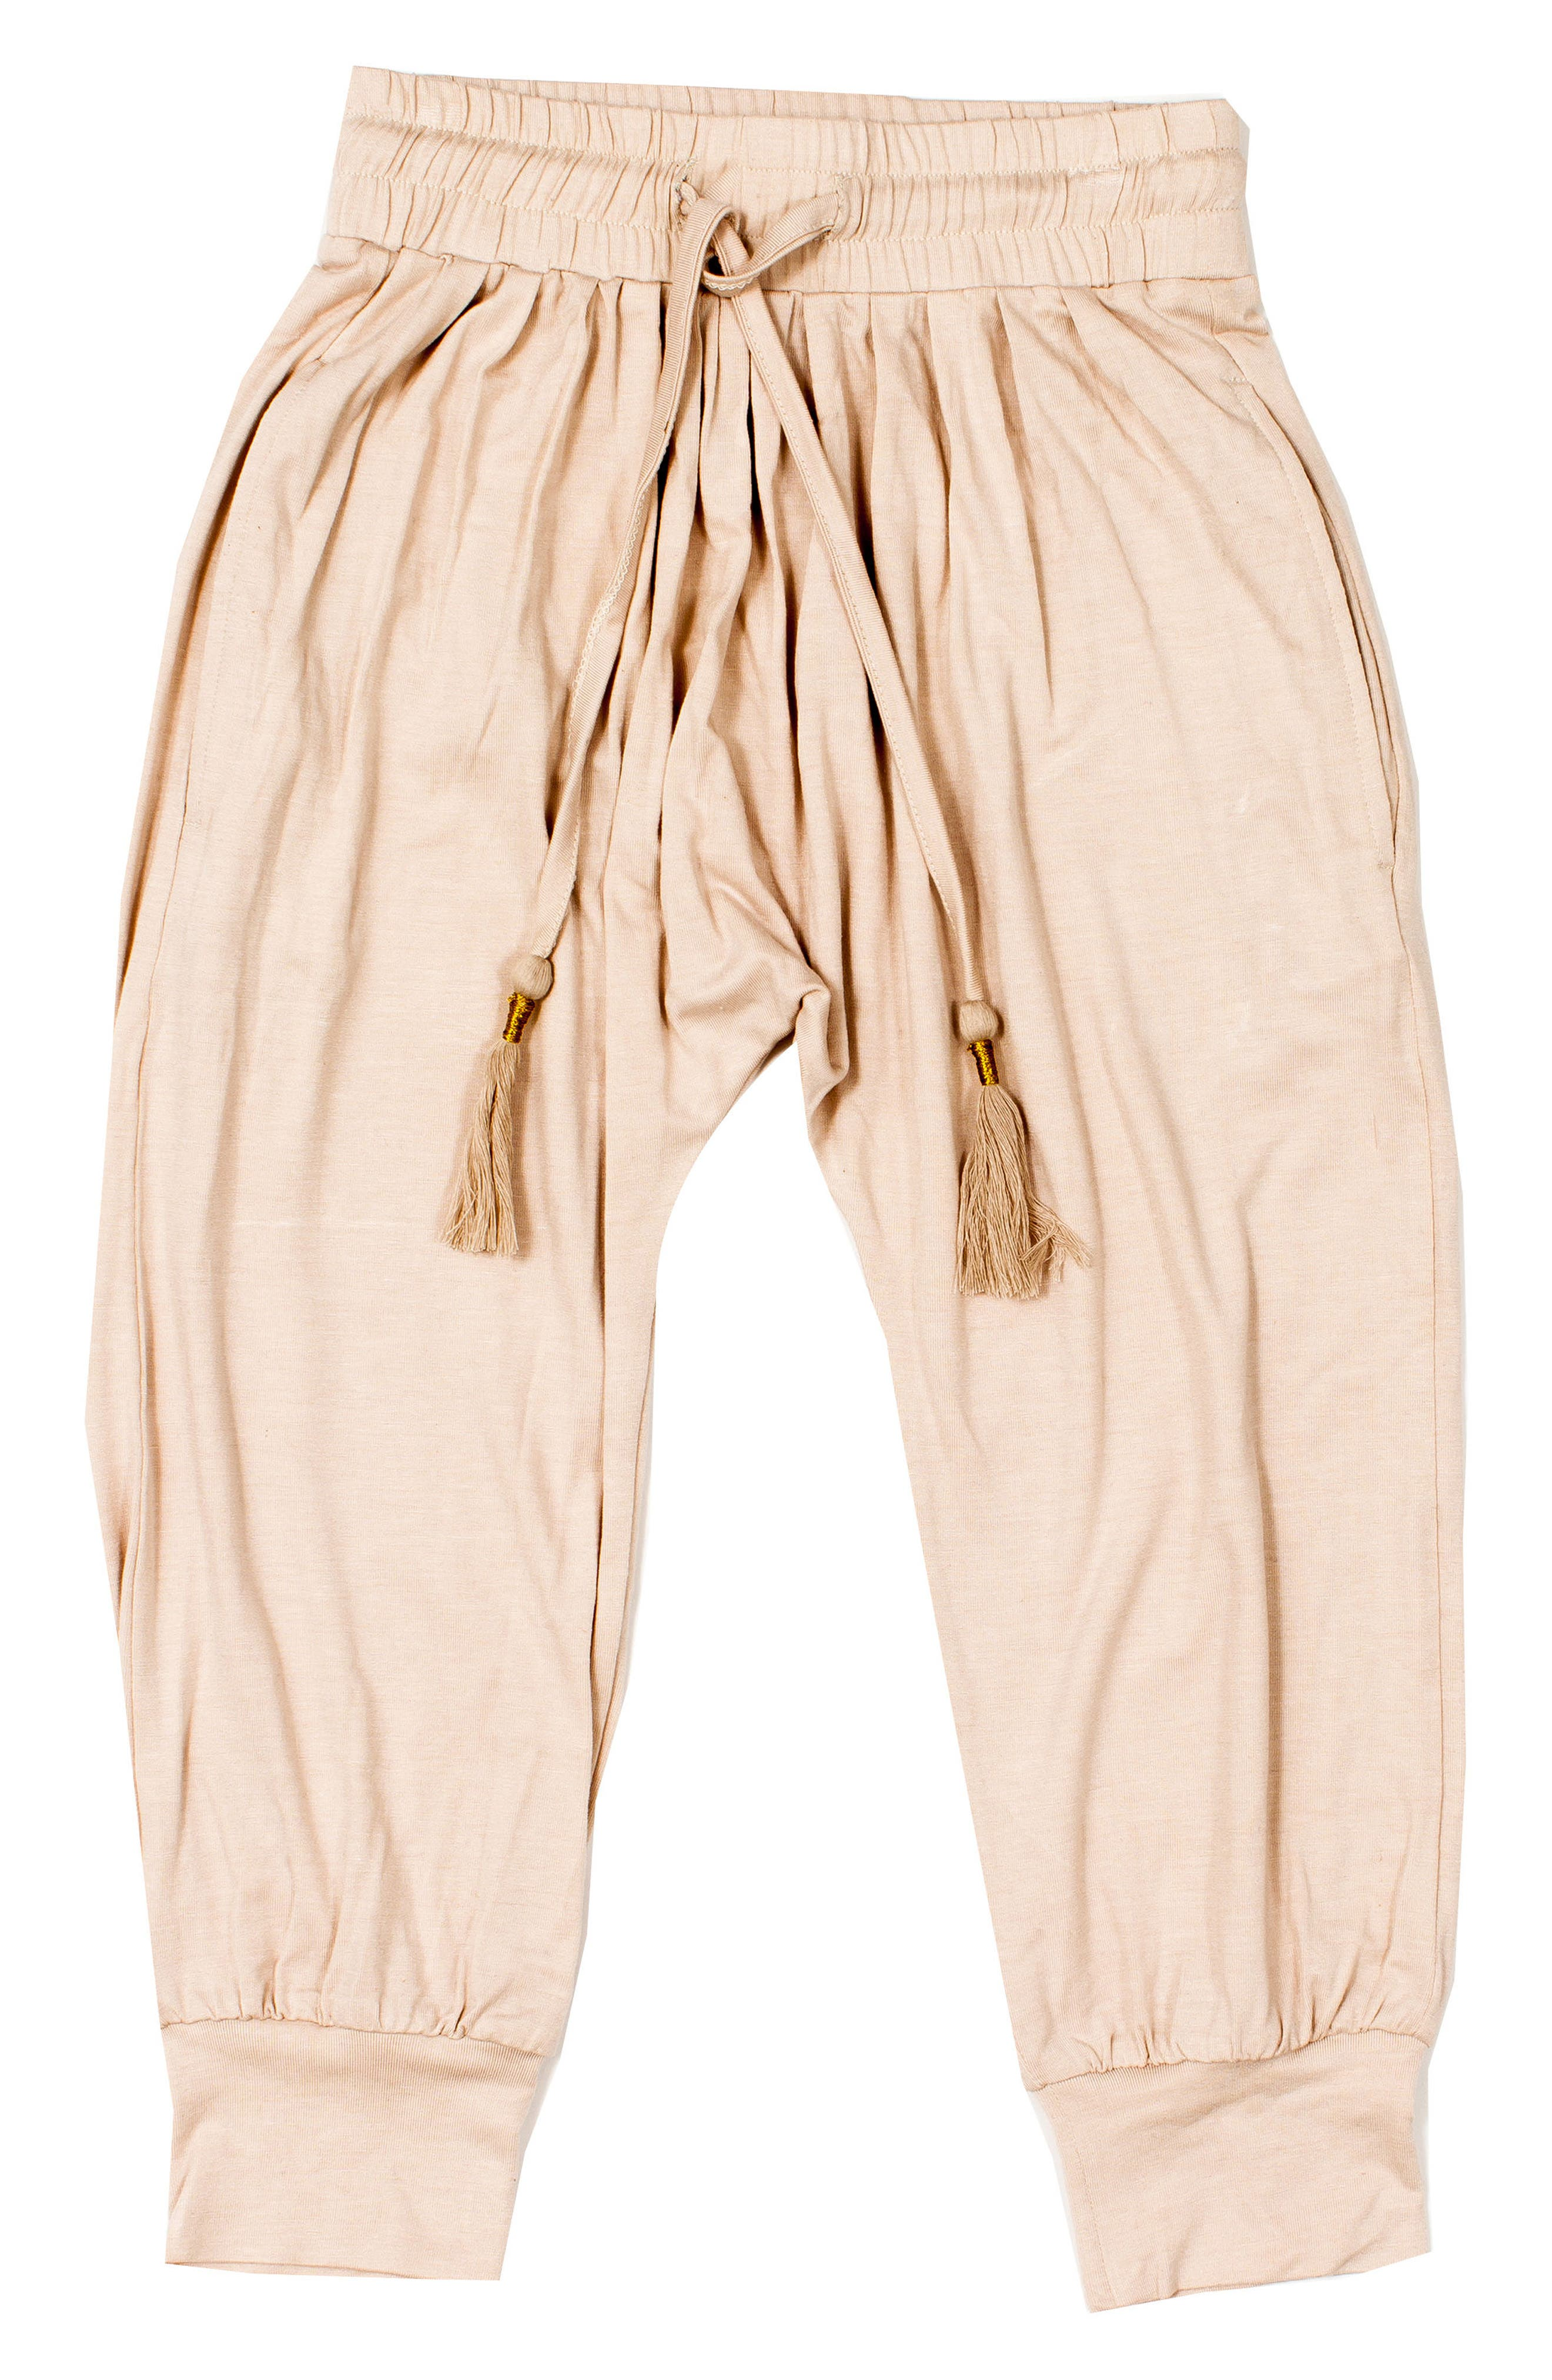 Girls Bowie X James Gathered Pants Size 1112  Pink